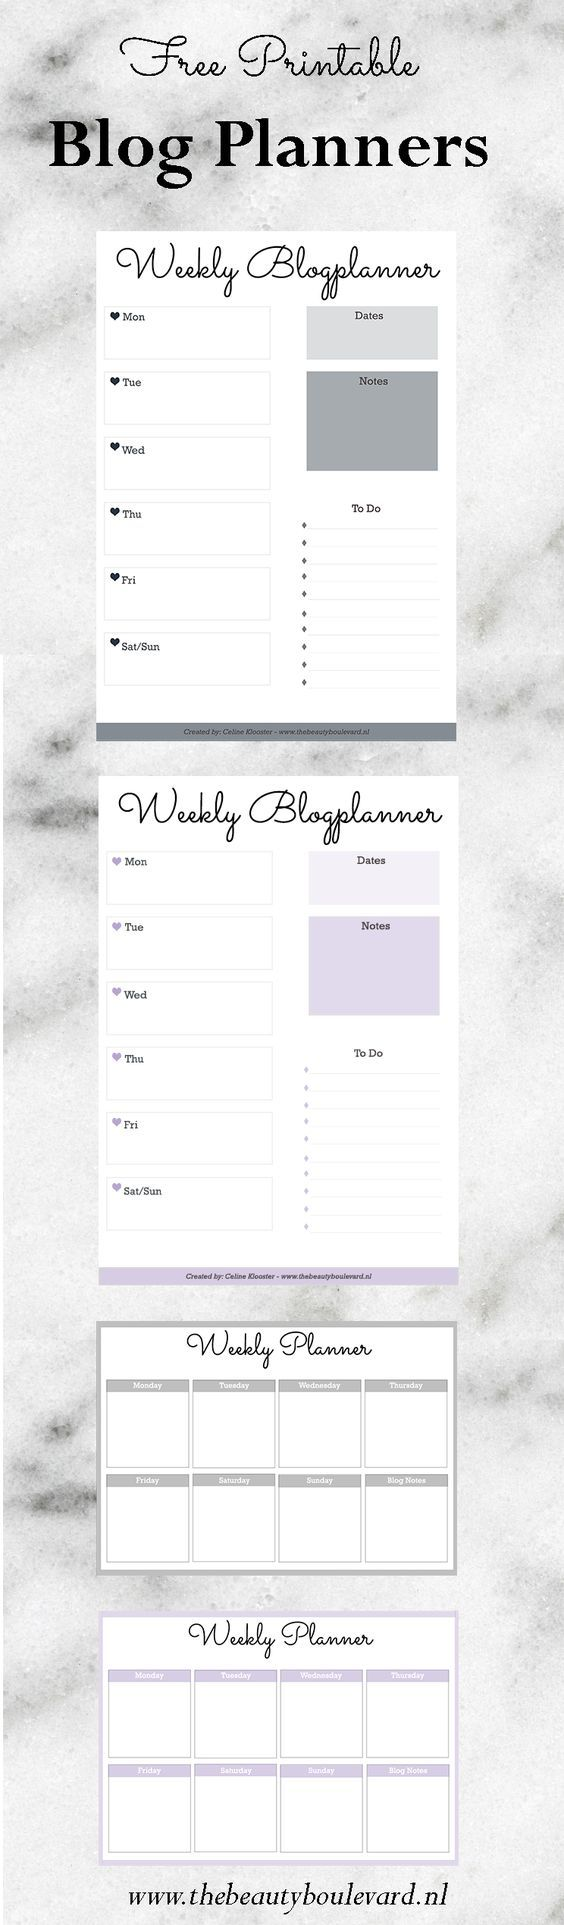 how to increase your blog traffic with planning free printable